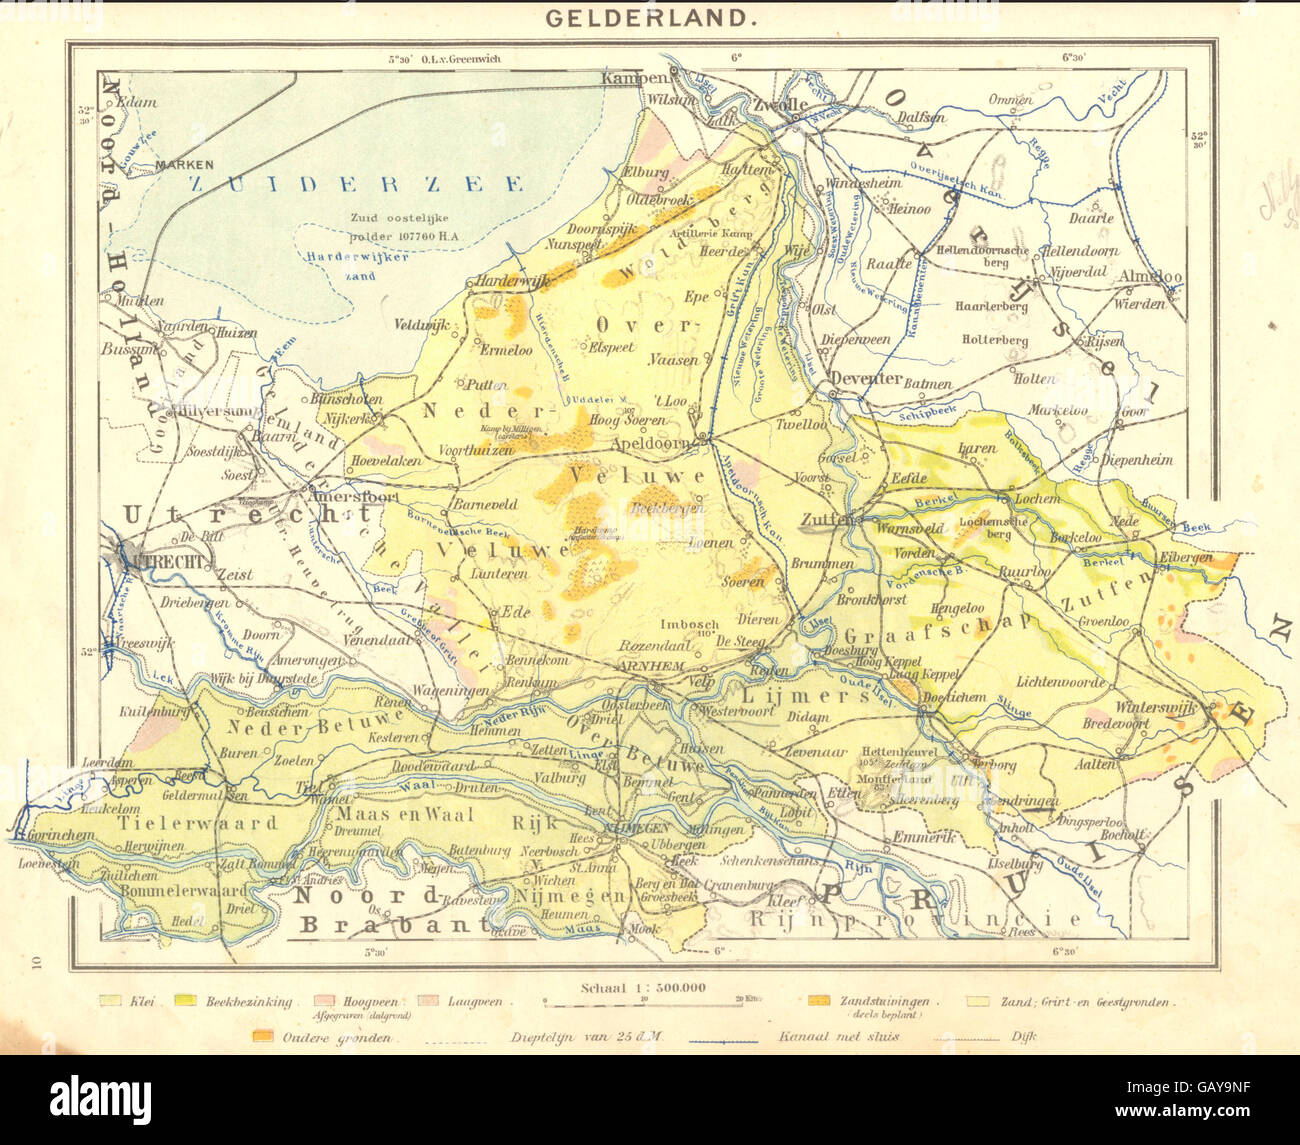 NETHERLANDS Gelderland 1922 vintage map Stock Photo Royalty Free